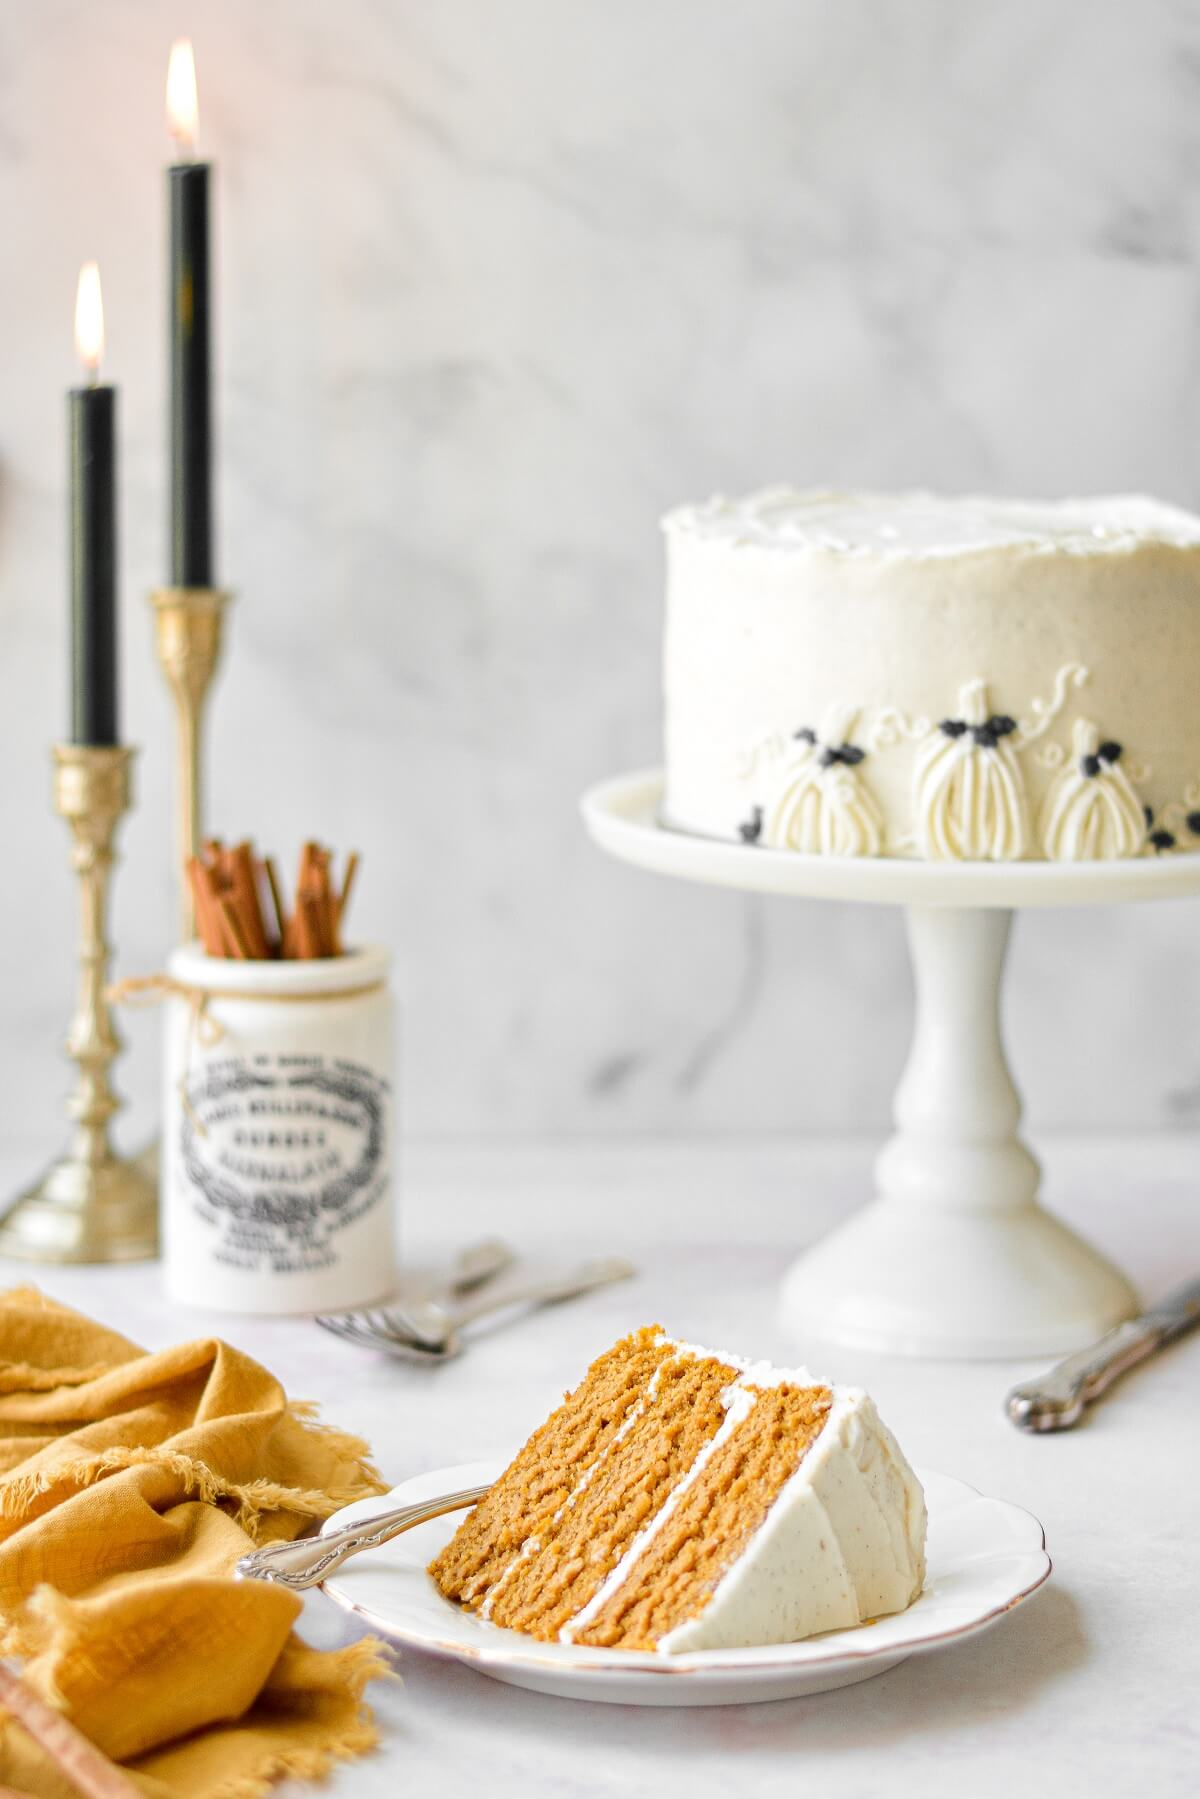 A slice of pumpkin cake on a white plate, next to a yellow linen napkin, with the cake in the background on a white cake stand.